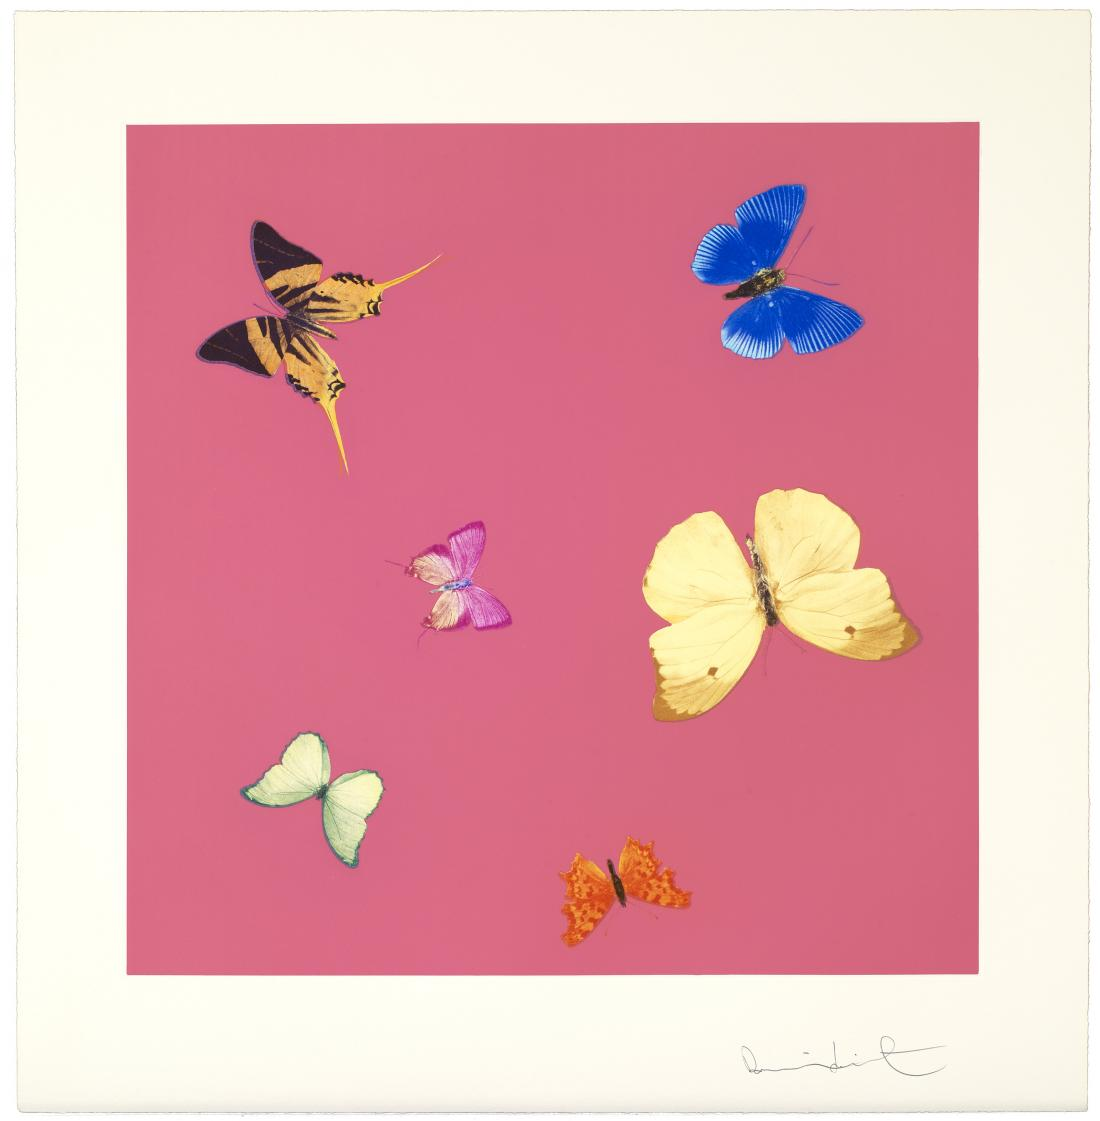 Lullaby by Damien Hirst